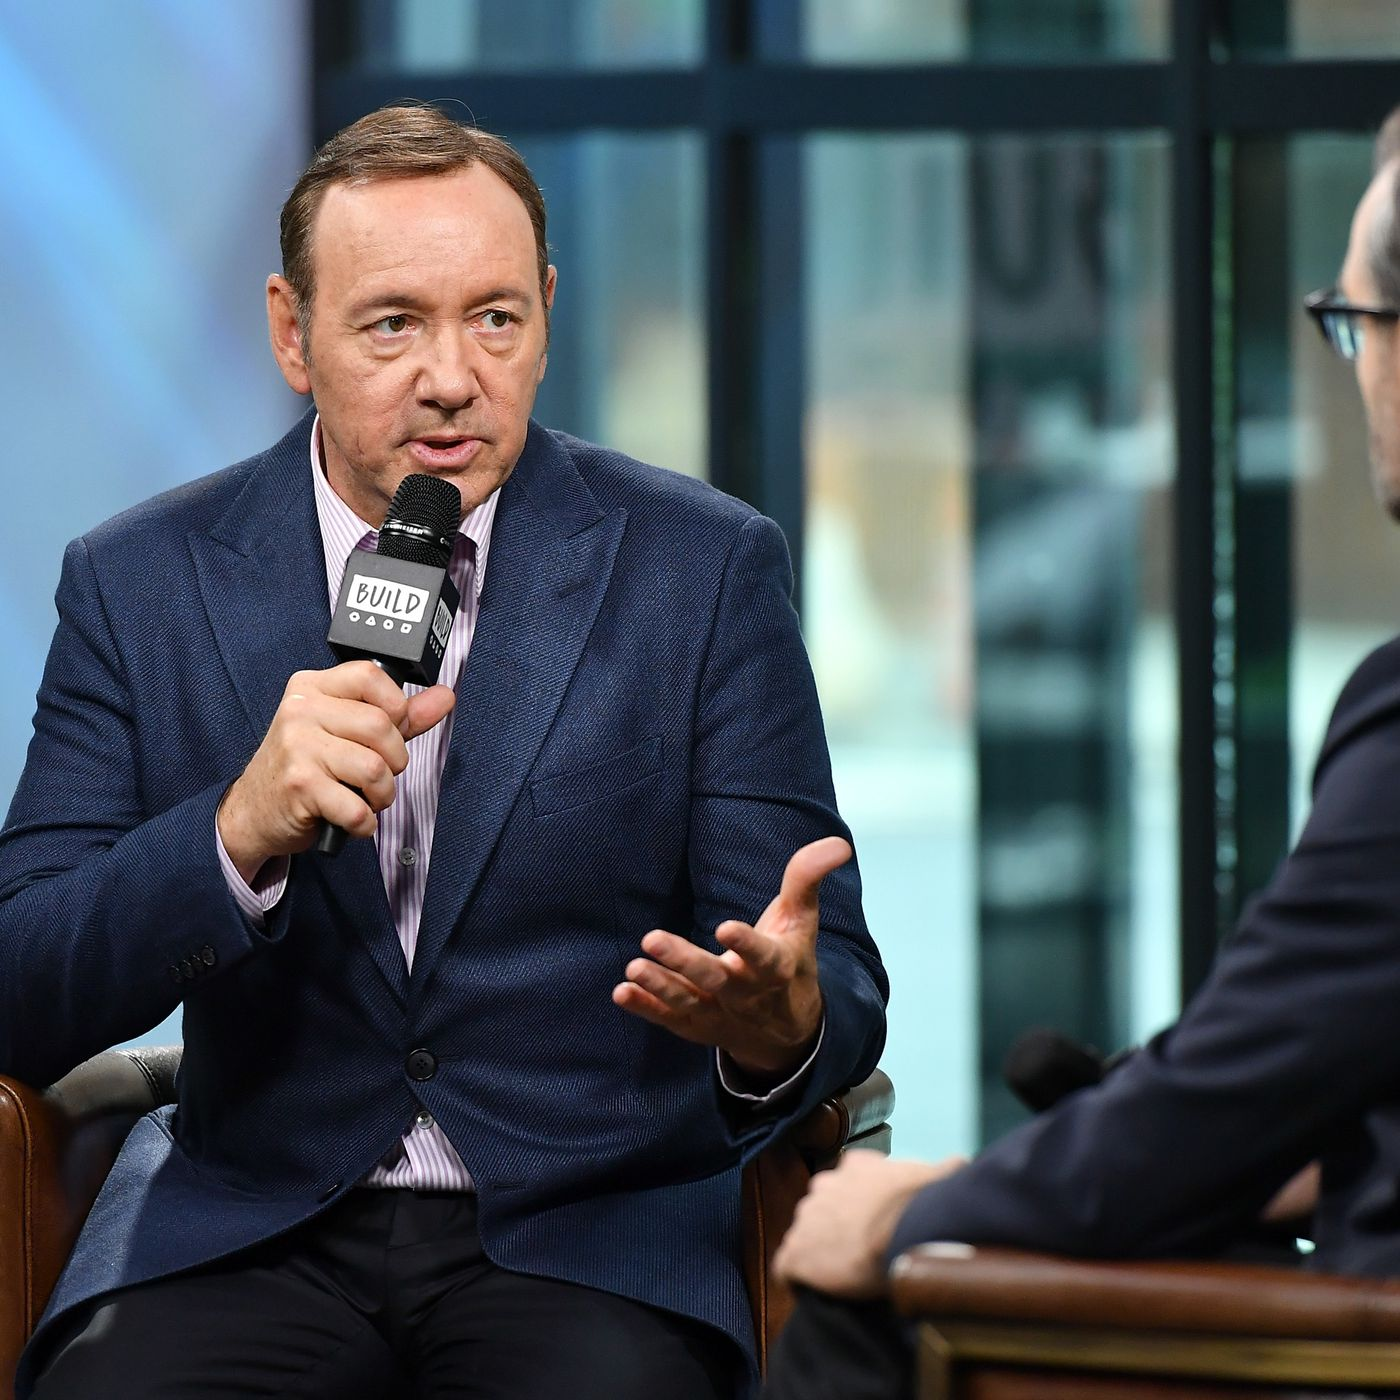 Kevin Spacey sexual assault allegations: everything we know